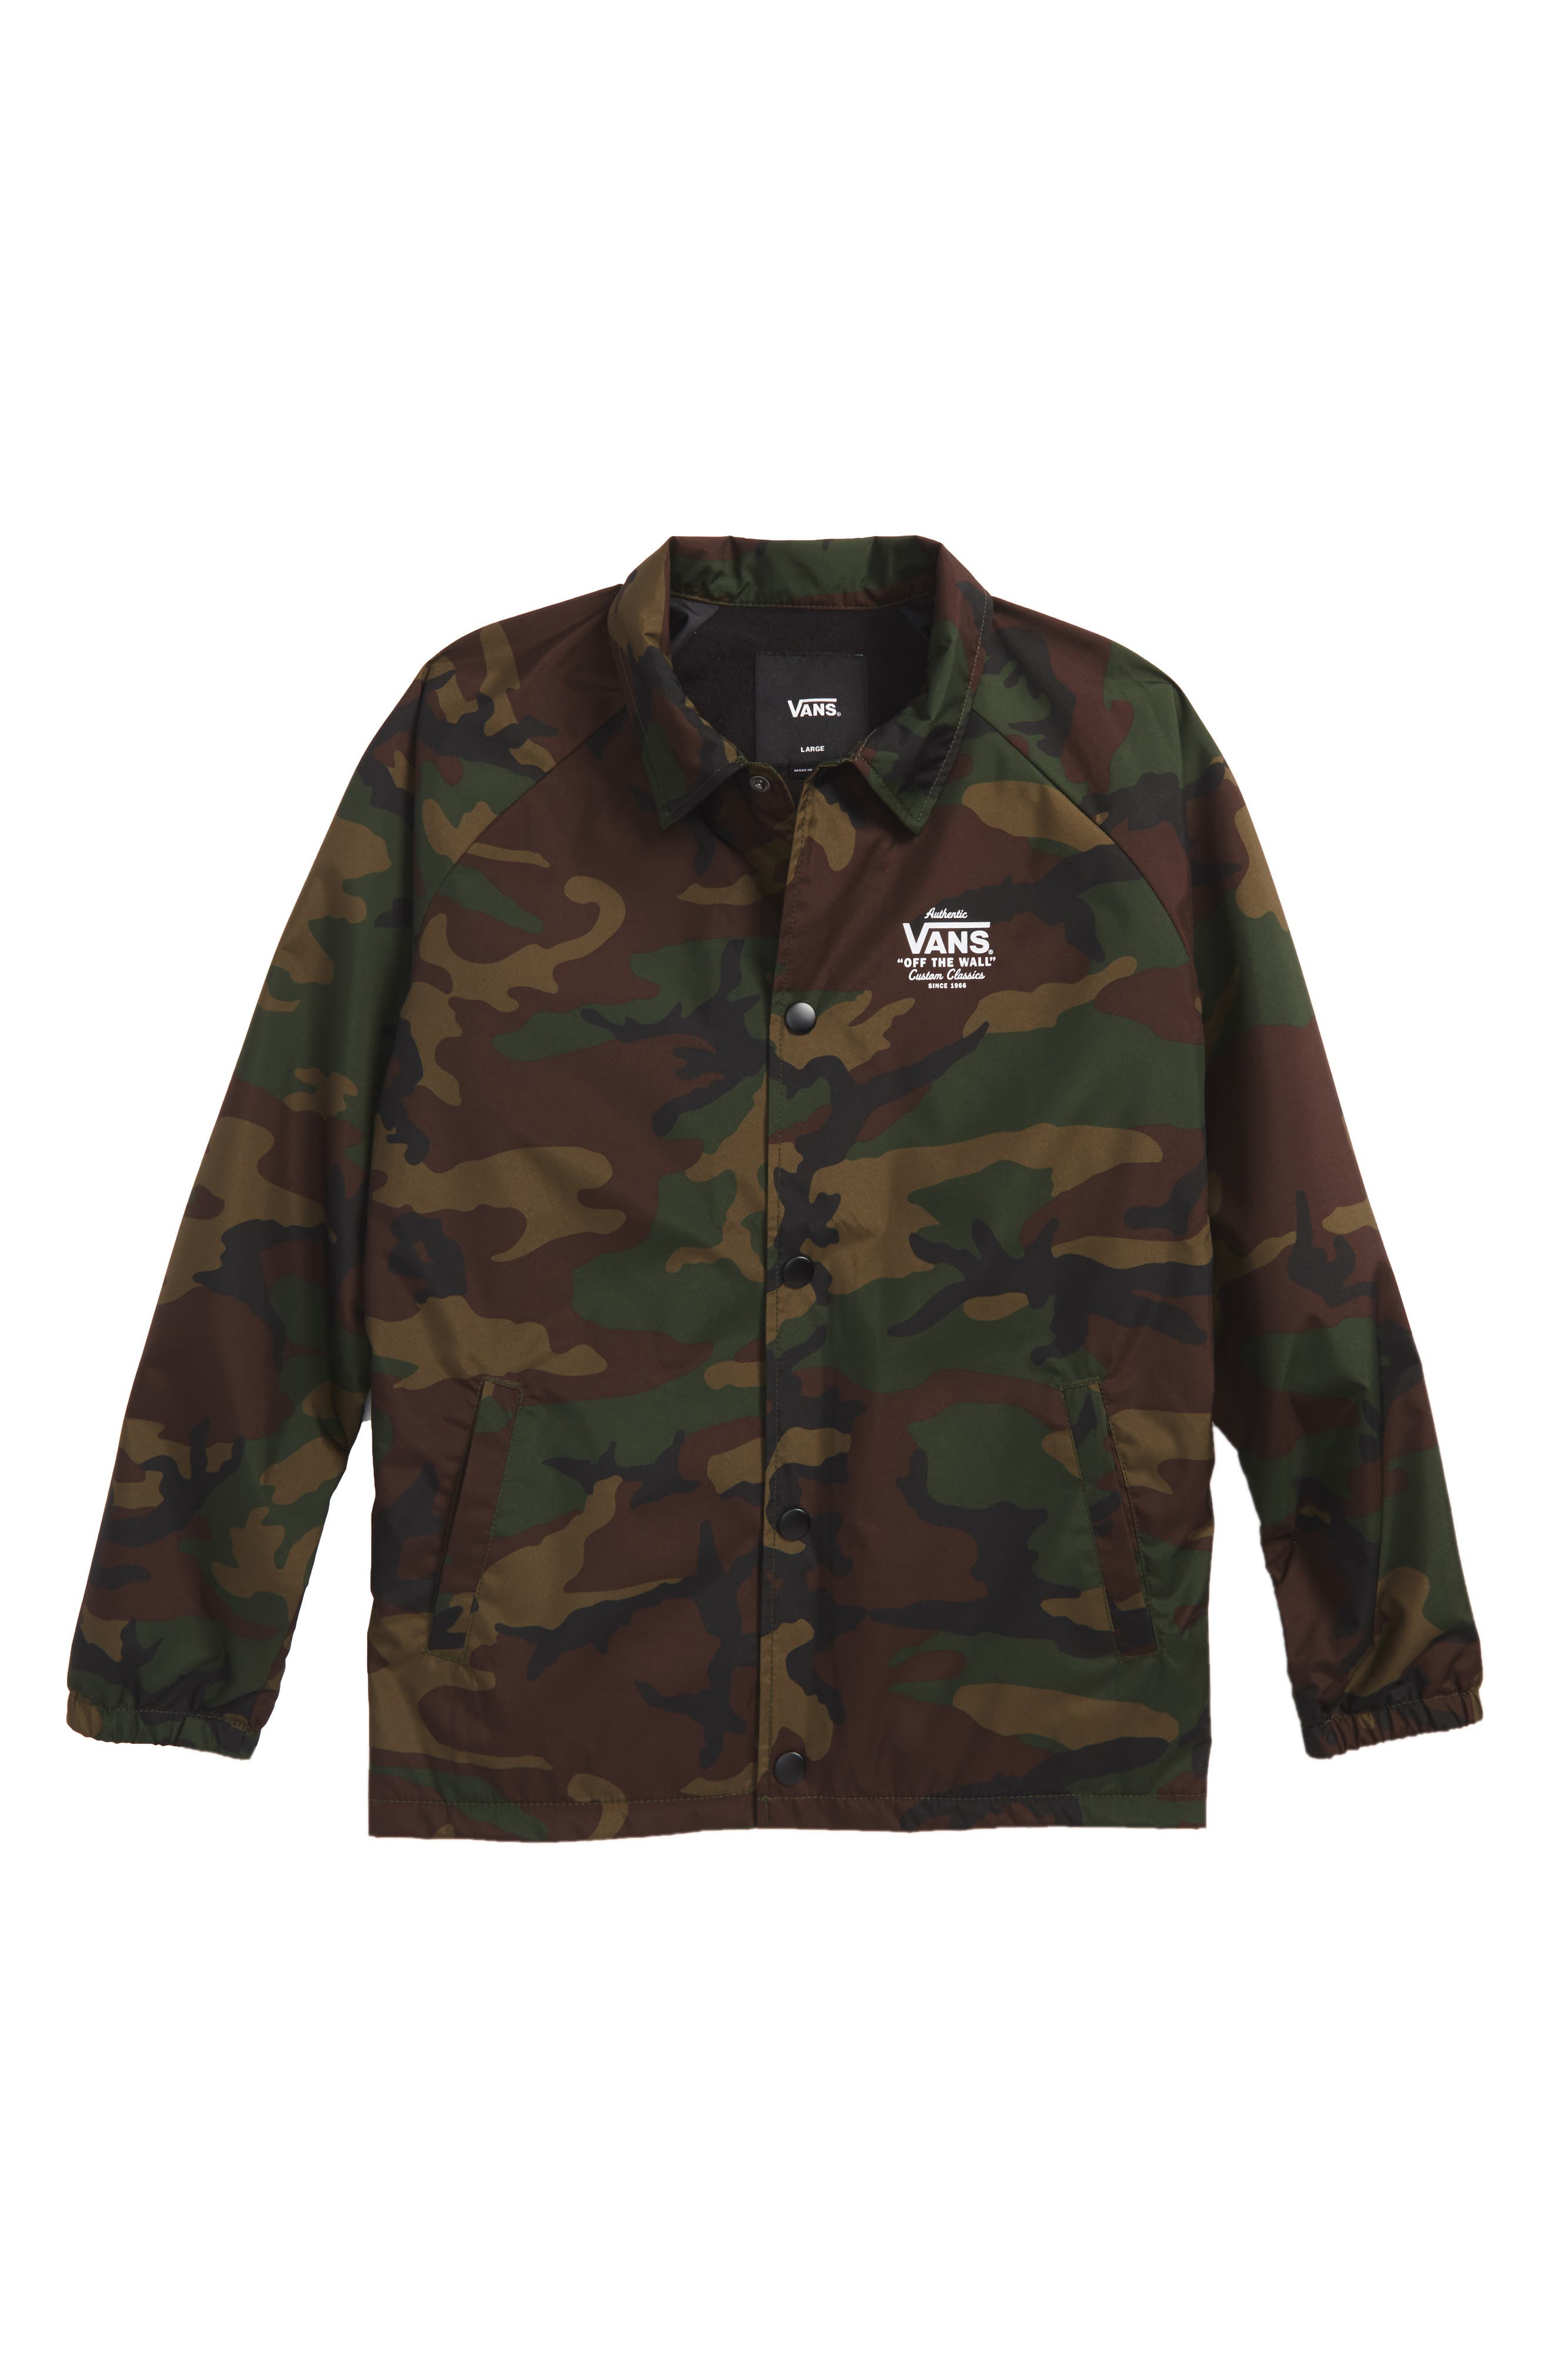 Vans Torrey Camo Jacket (Big Boys)